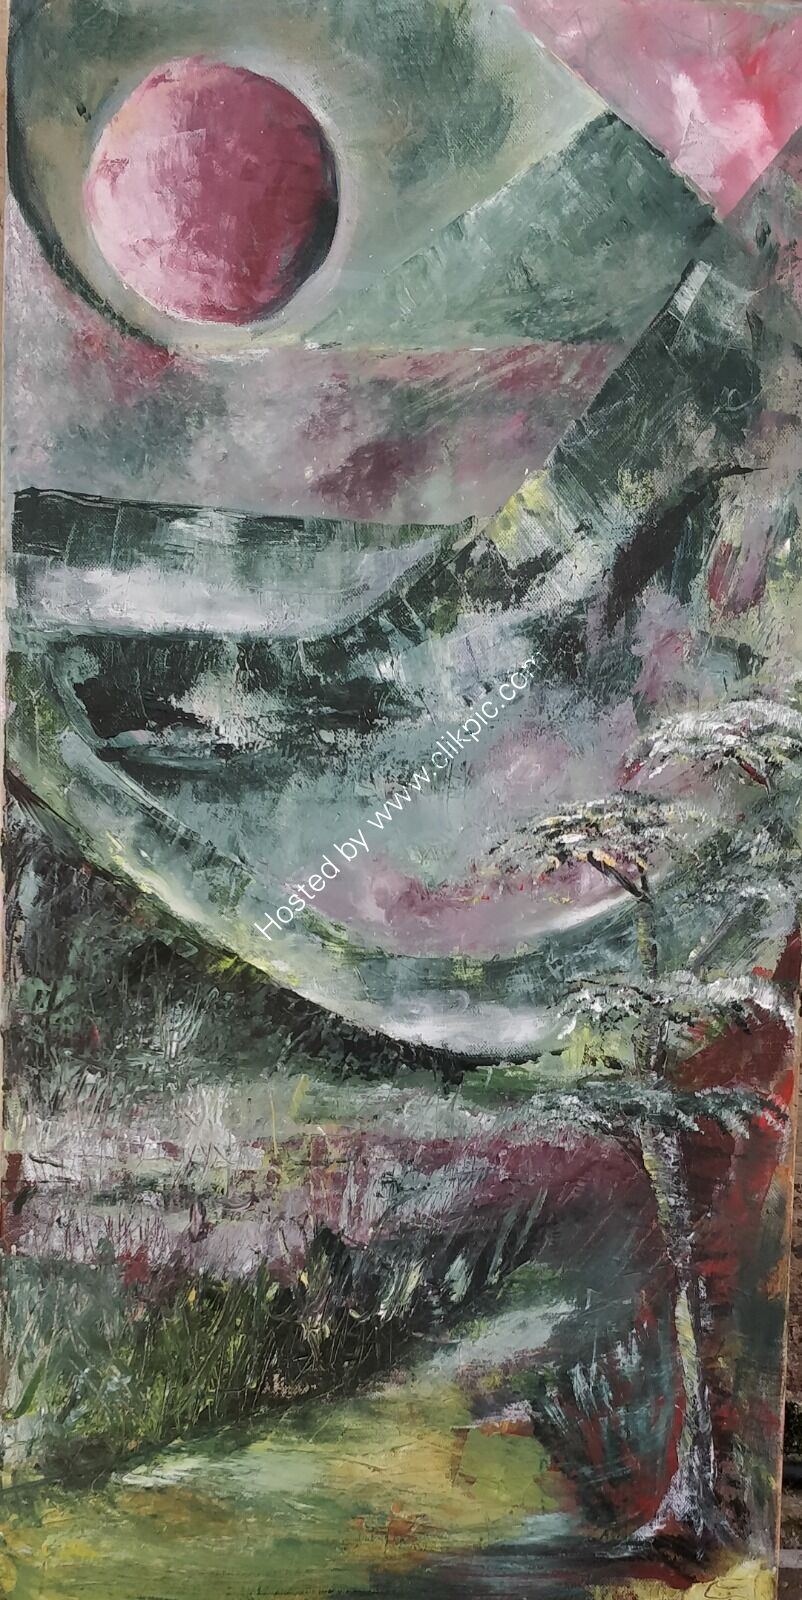 Imagniery abstract acrylic landscape